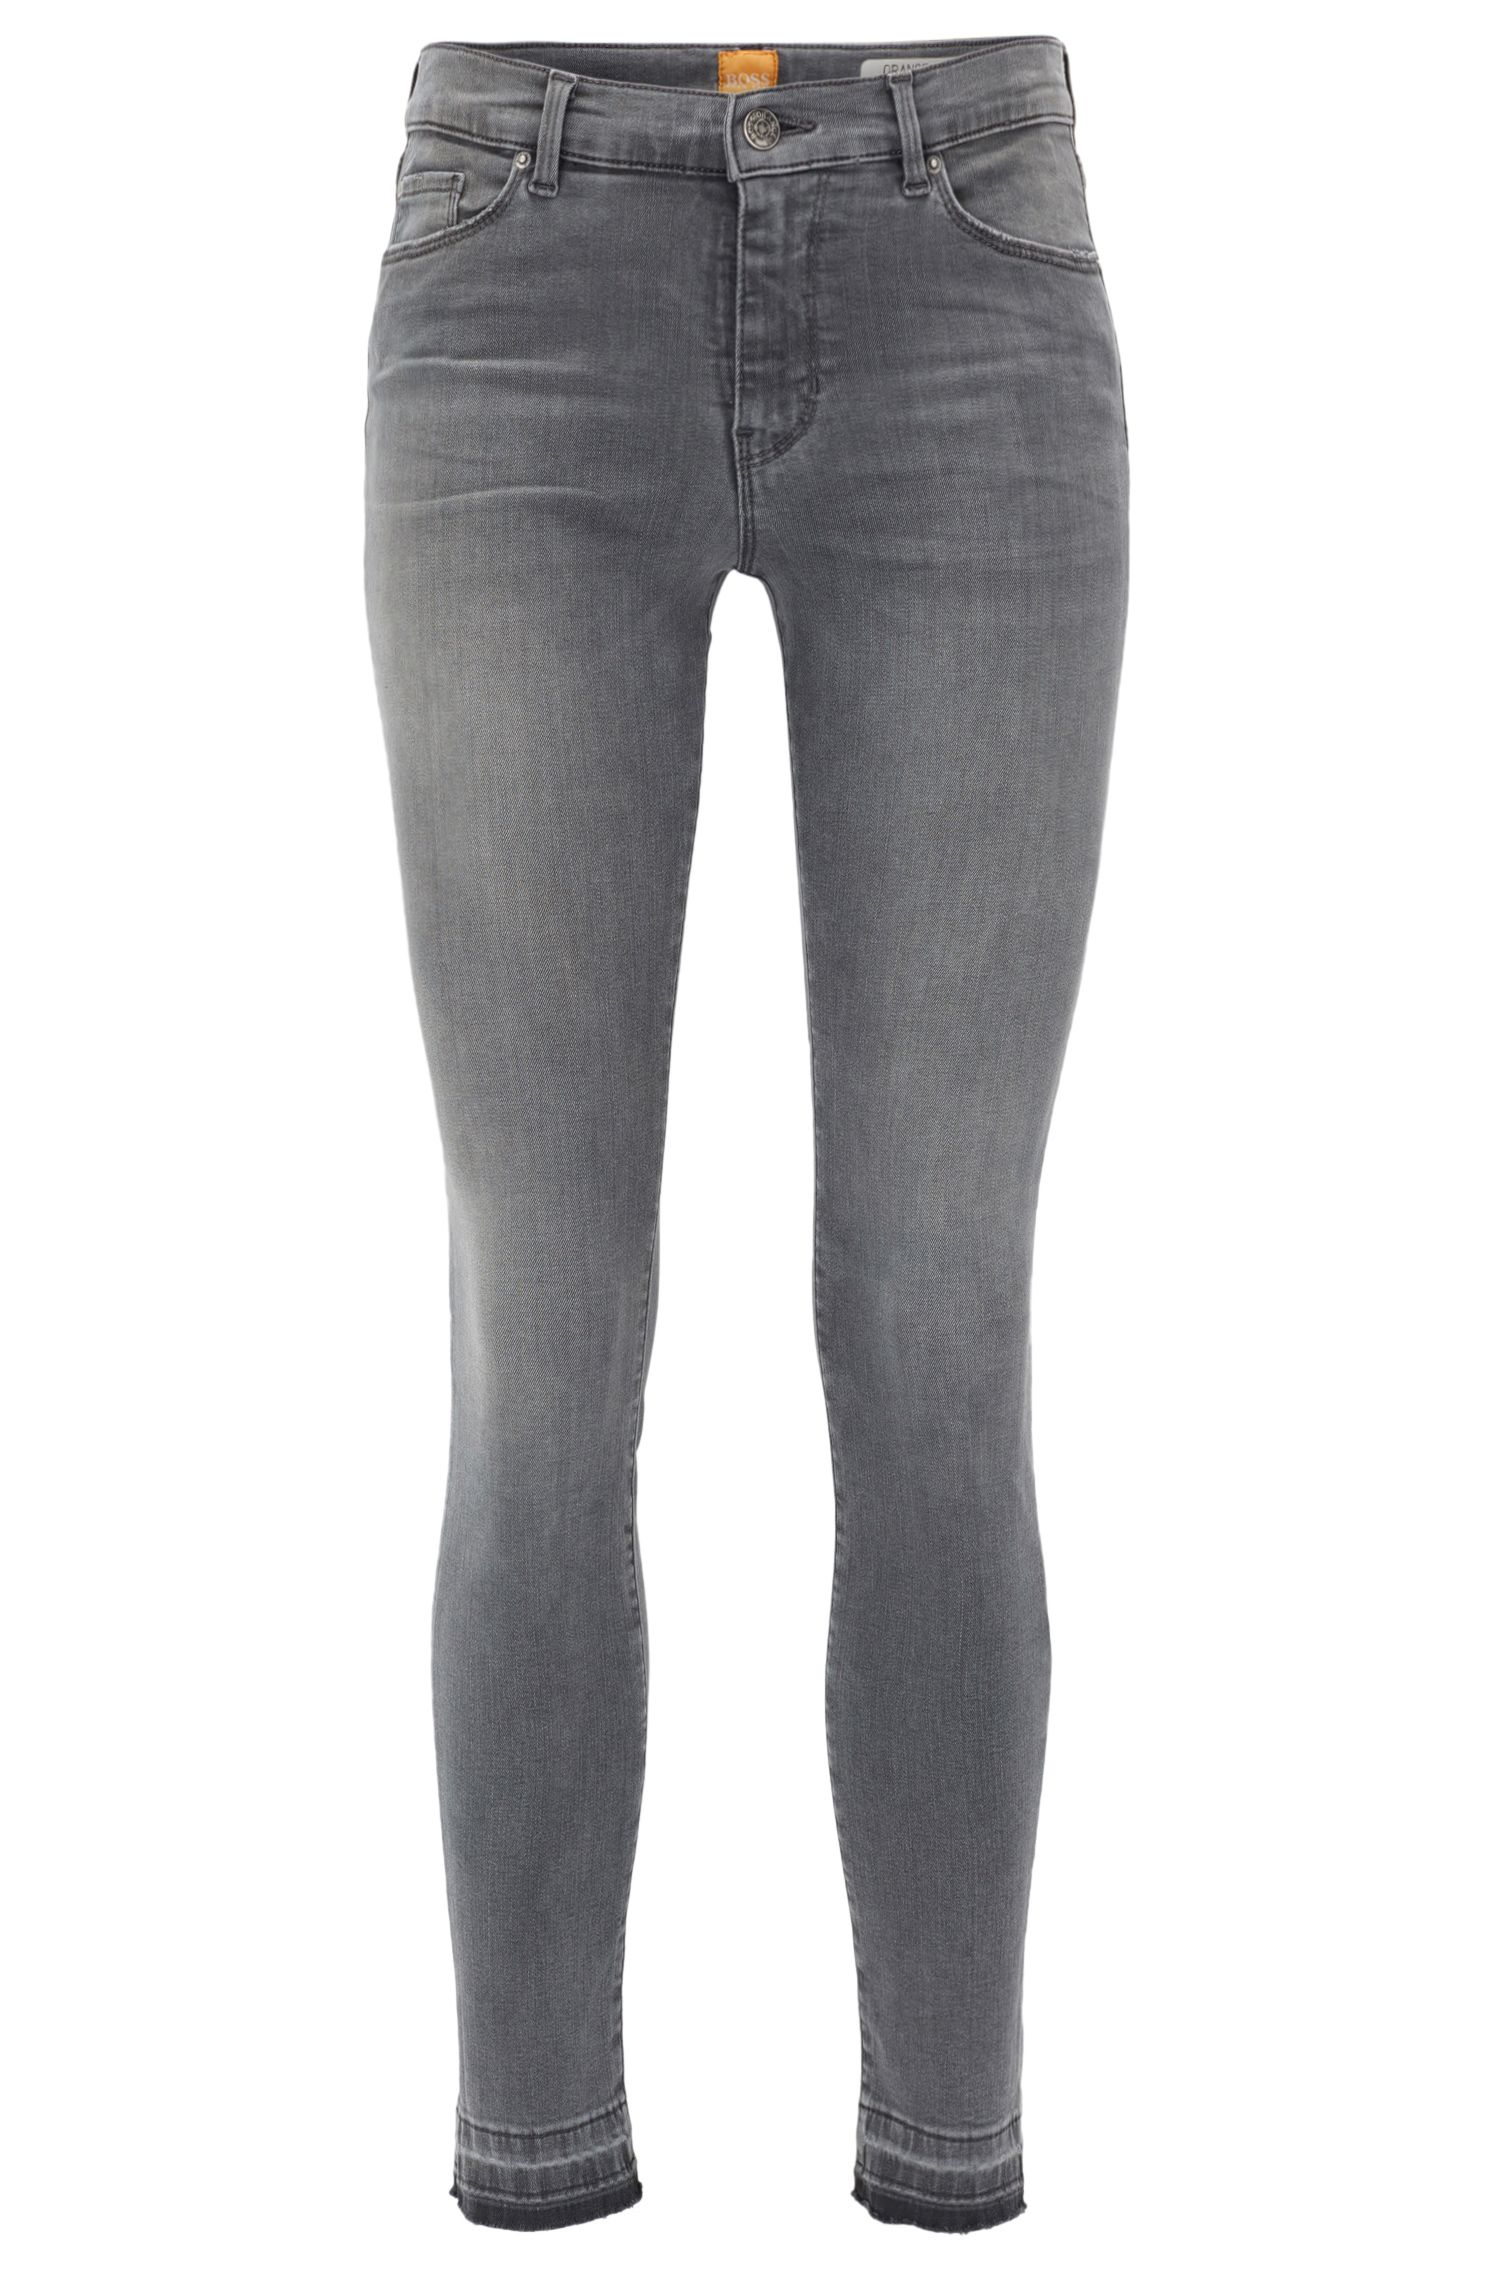 Kortere, skinny-fit jeans van middelgrijs superstretch denim